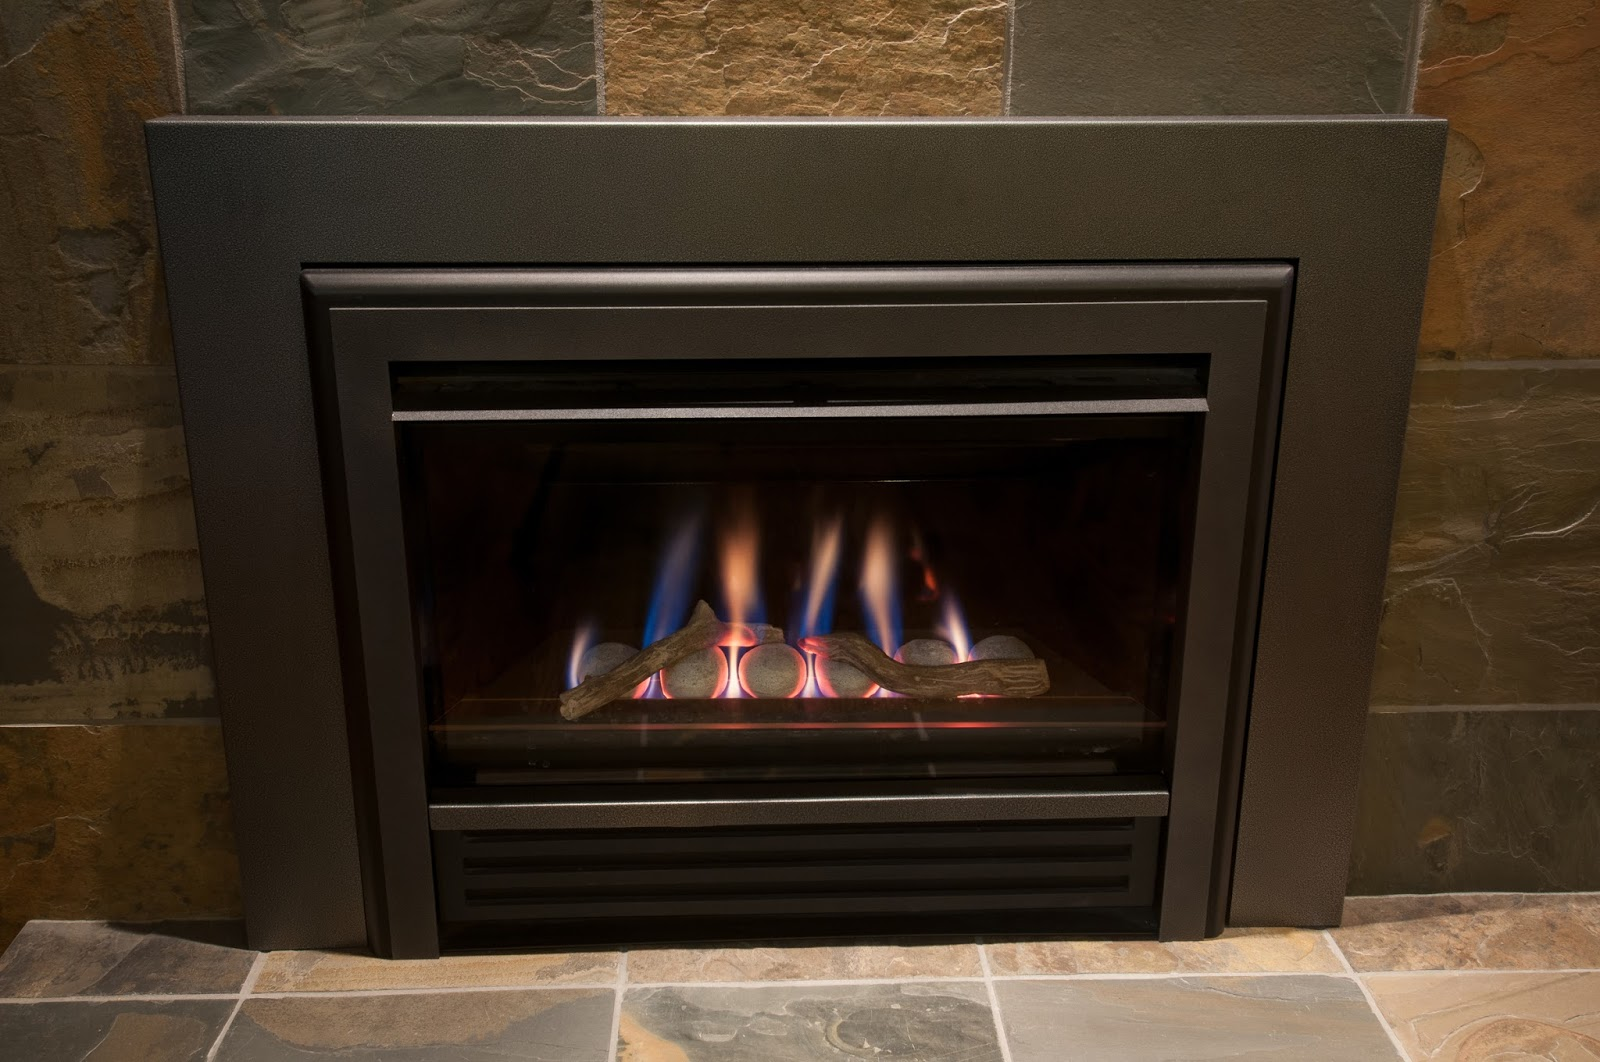 Gas Fireplace Repair in Oakville 289-643-1992